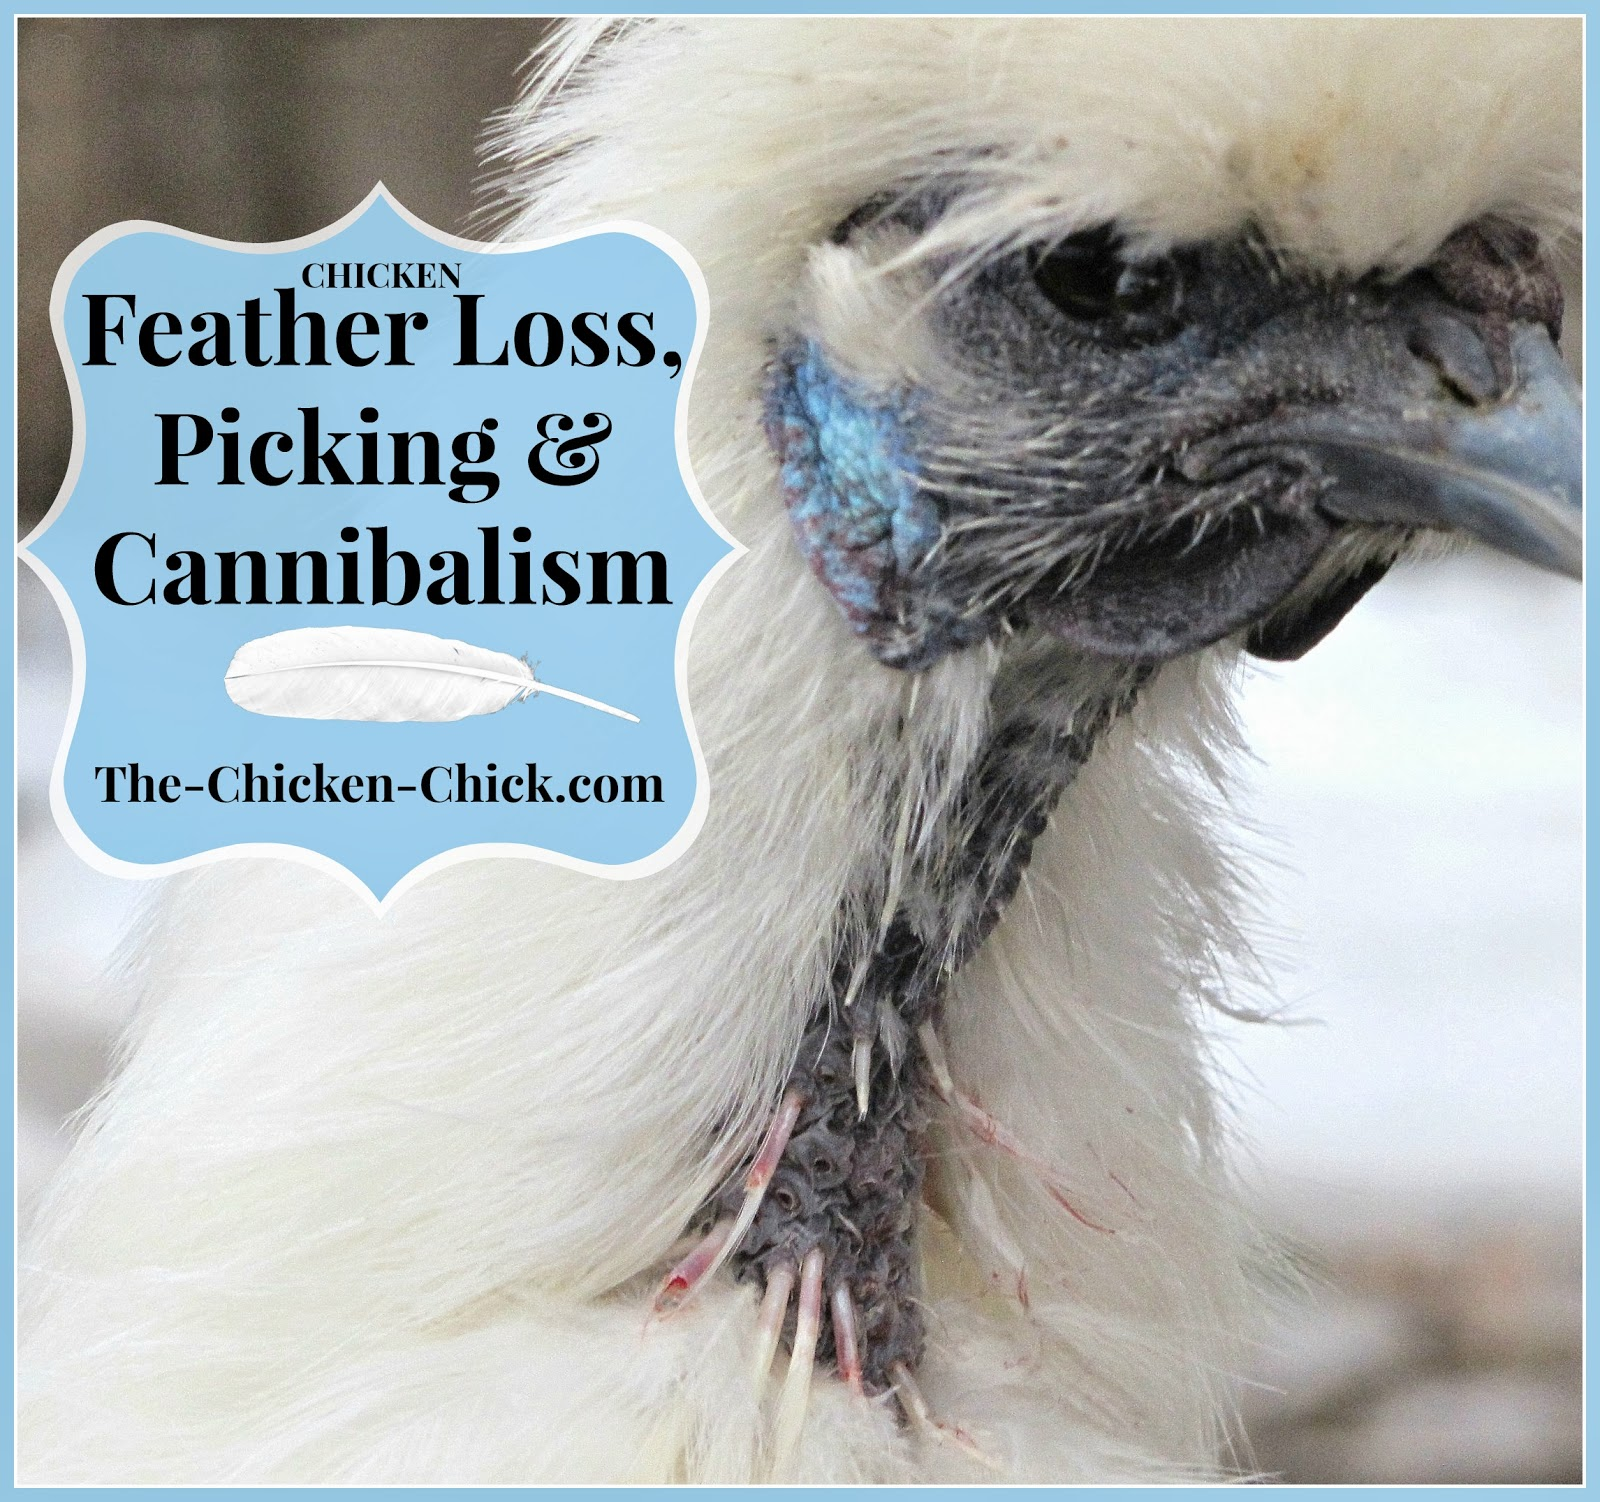 the chicken chicken feather loss u0026 cannibalism causes